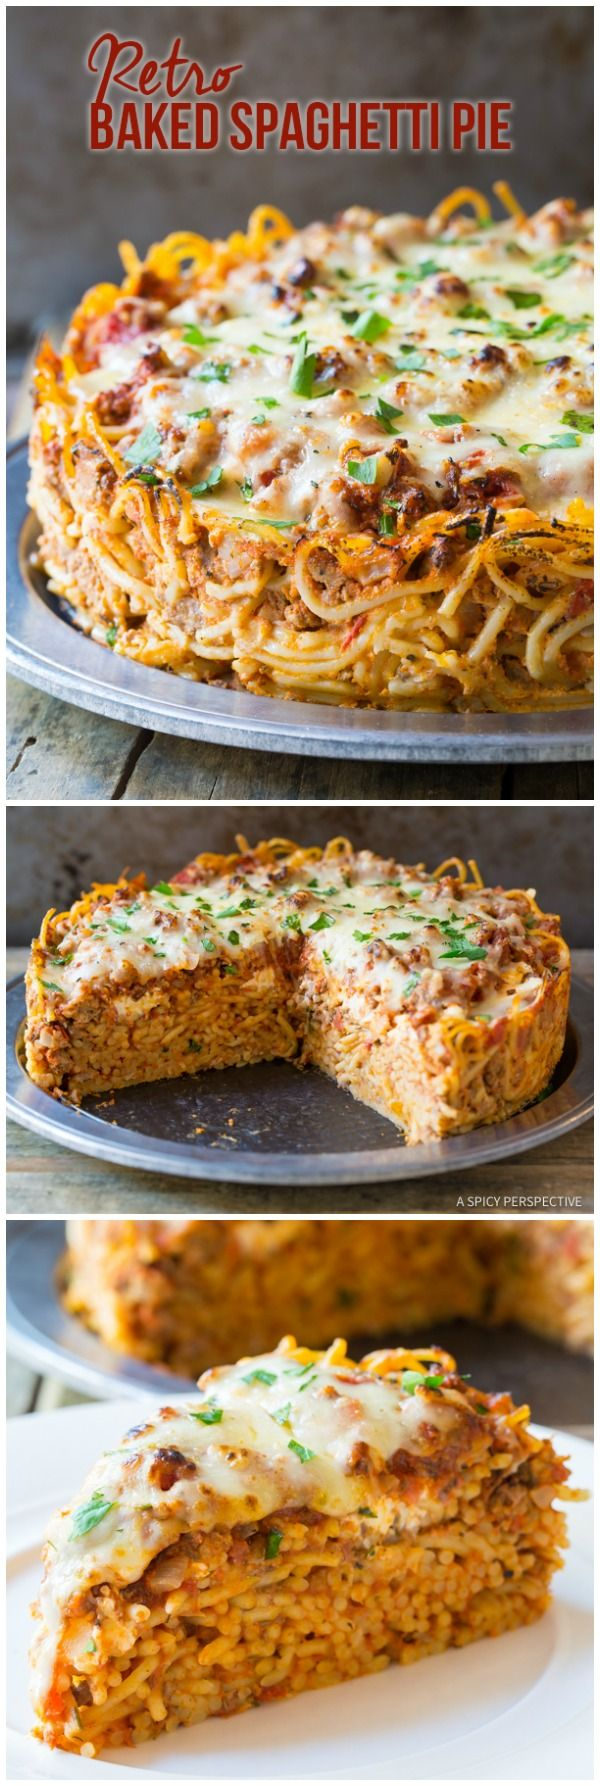 Retro Baked Spaghetti Pie Recipe | ASpicyPerspective.com #retro via @spicyperspectiv